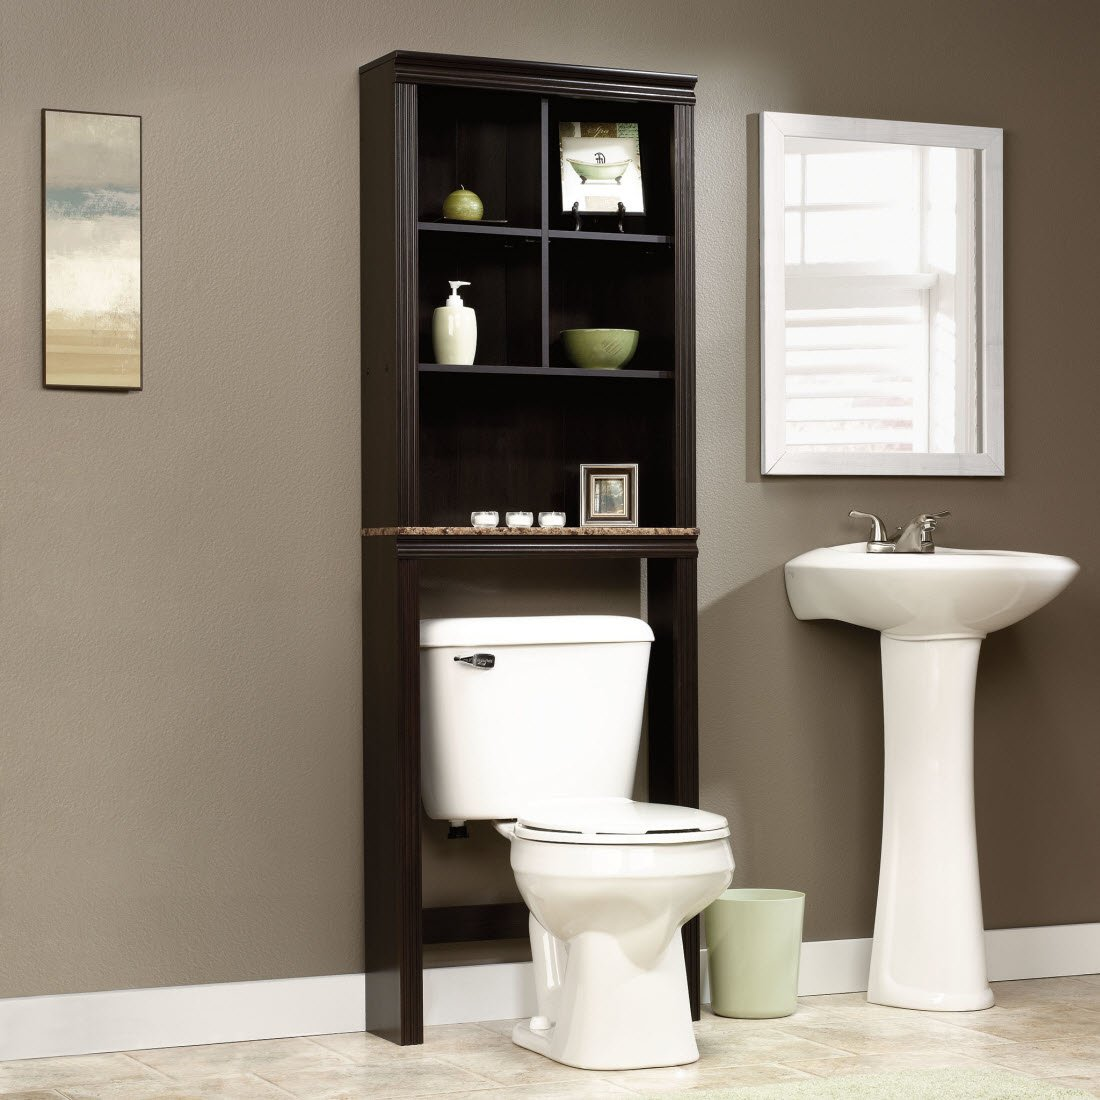 amazoncom over the toilet cabinet with open shelves kitchen dining - Over The Toilet Cabinet